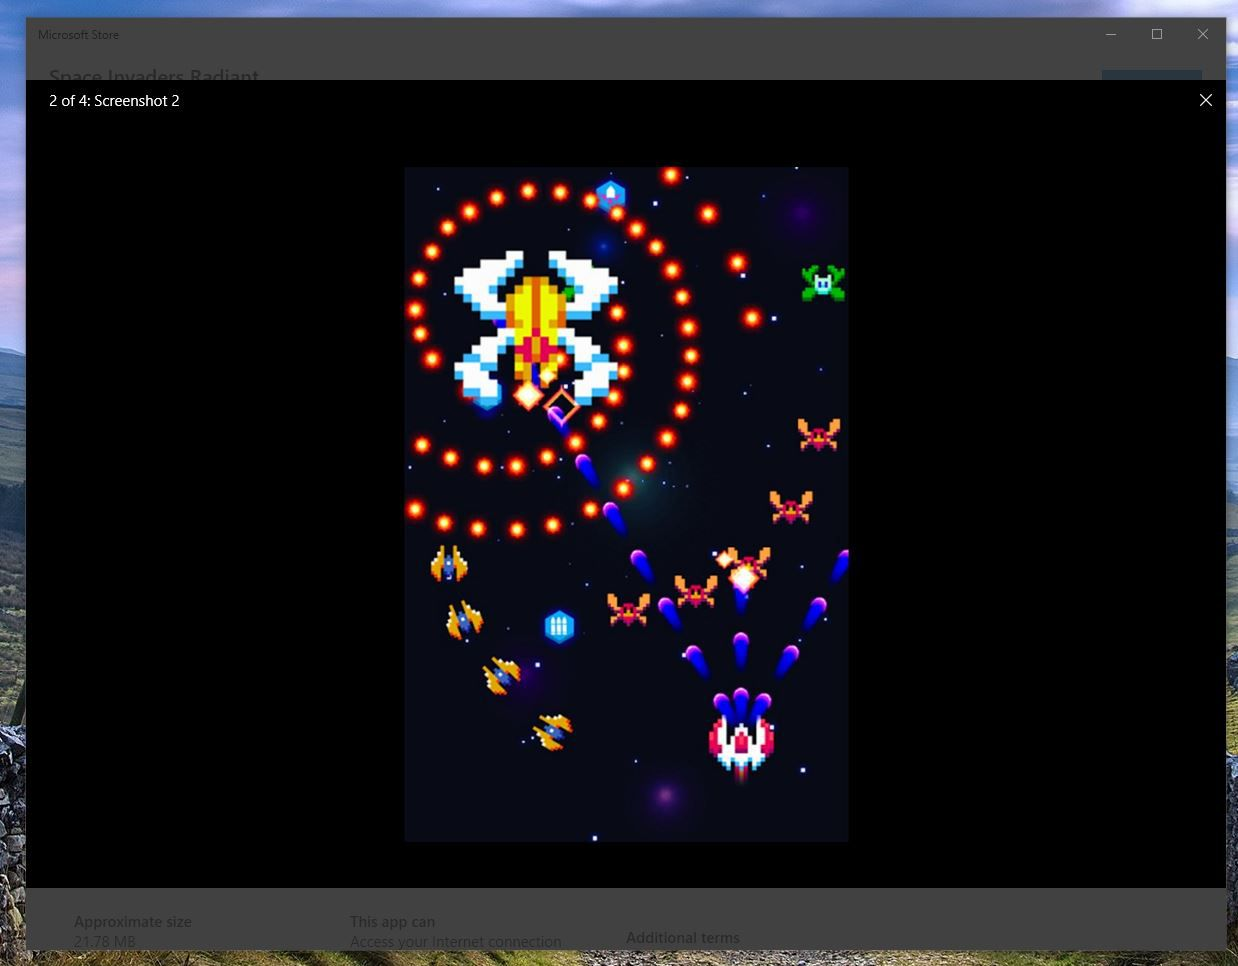 Space Invaders Radiant in Microsoft Store